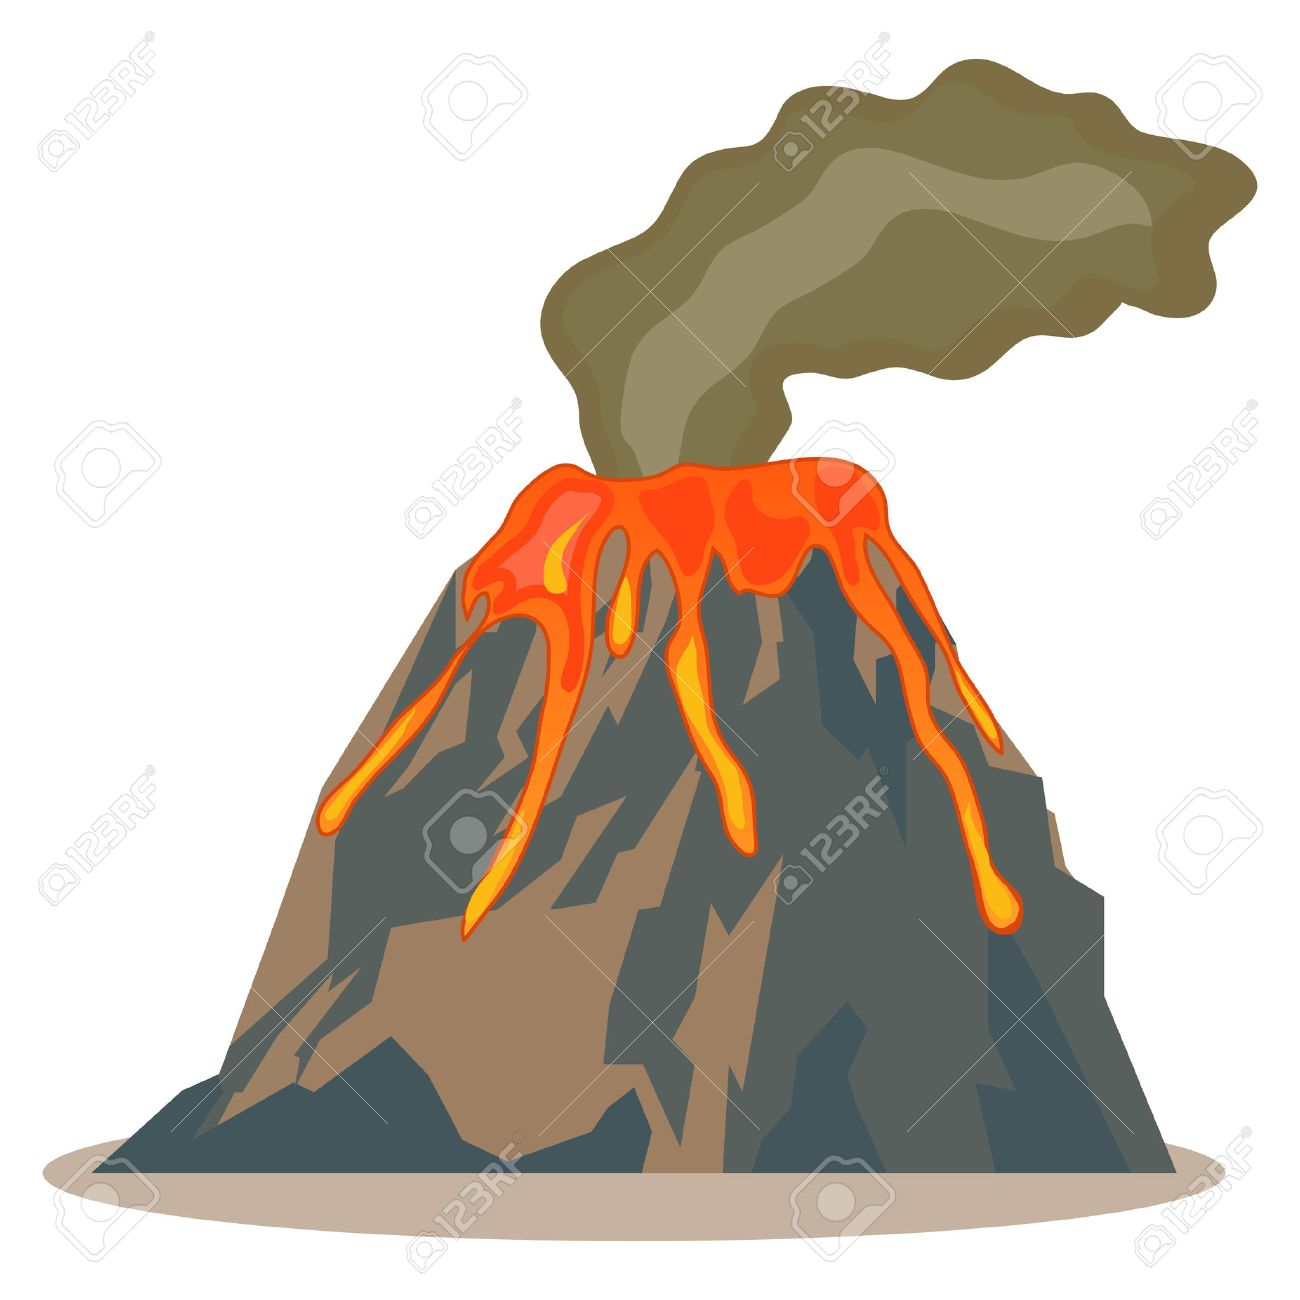 Volcano lava clipart clip art library download Collection of Volcano clipart | Free download best Volcano ... clip art library download